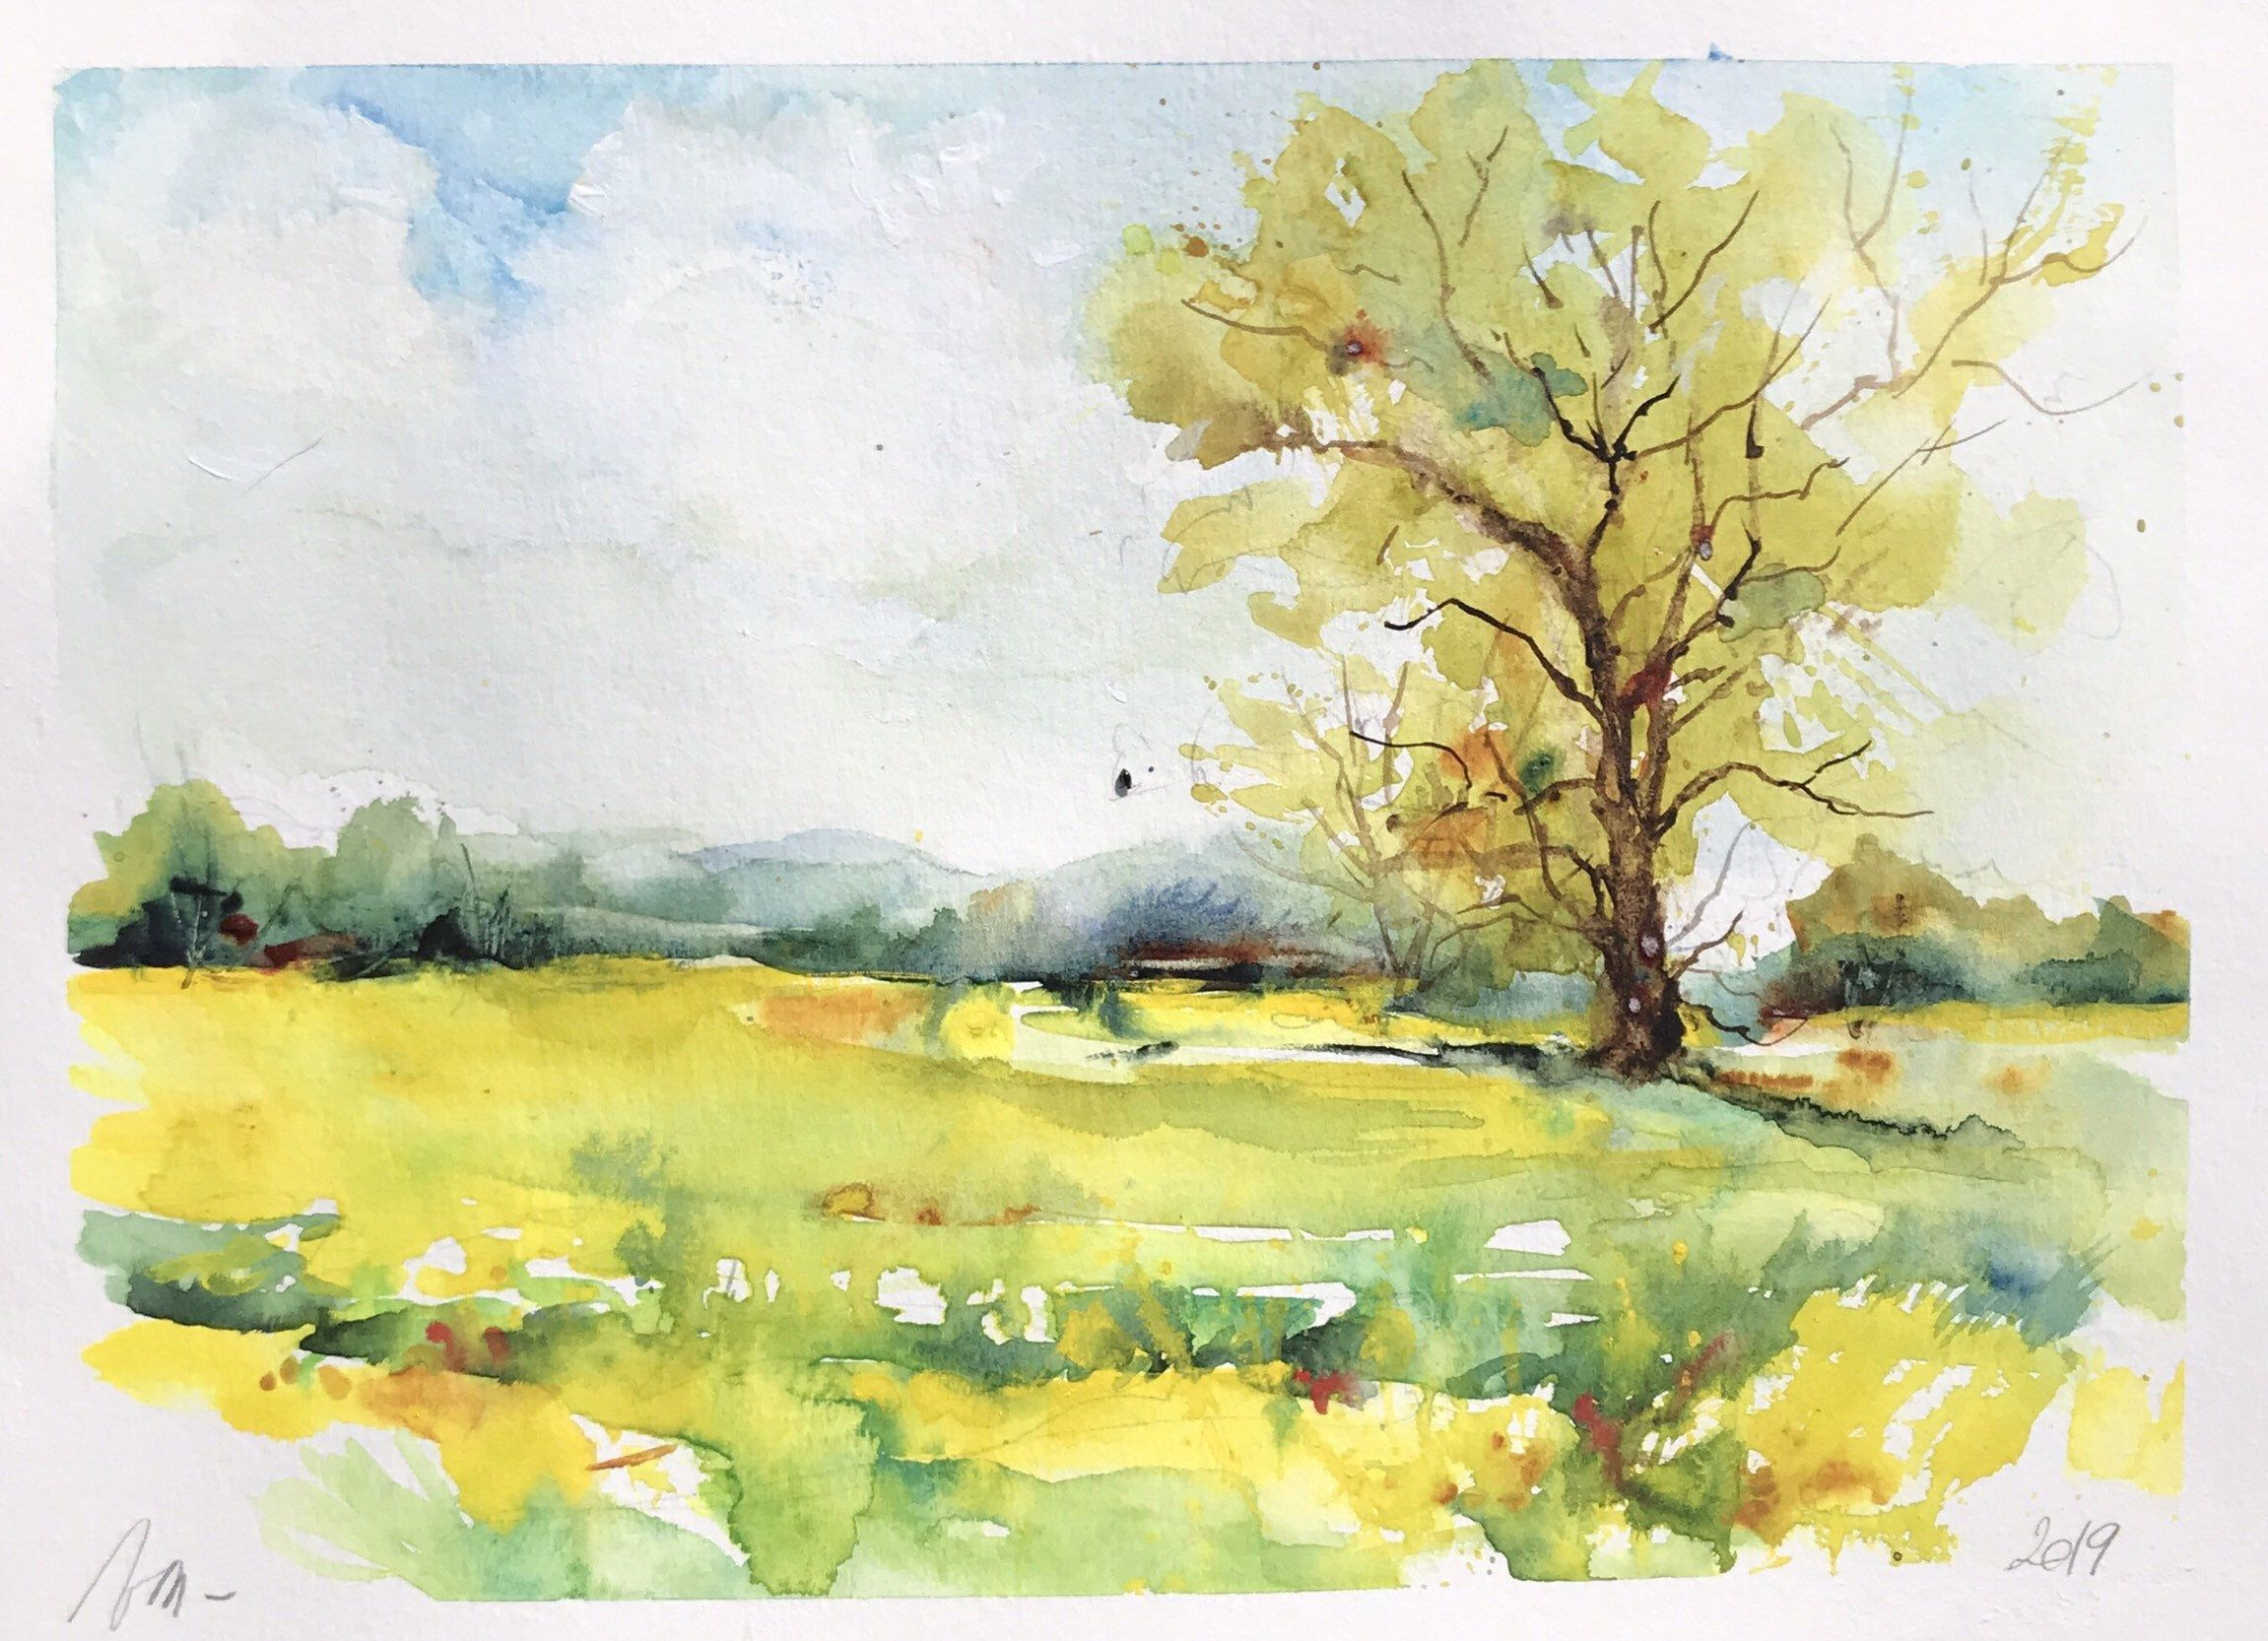 Aquarelle Peinture Originale Champ De Colza Au Printemps